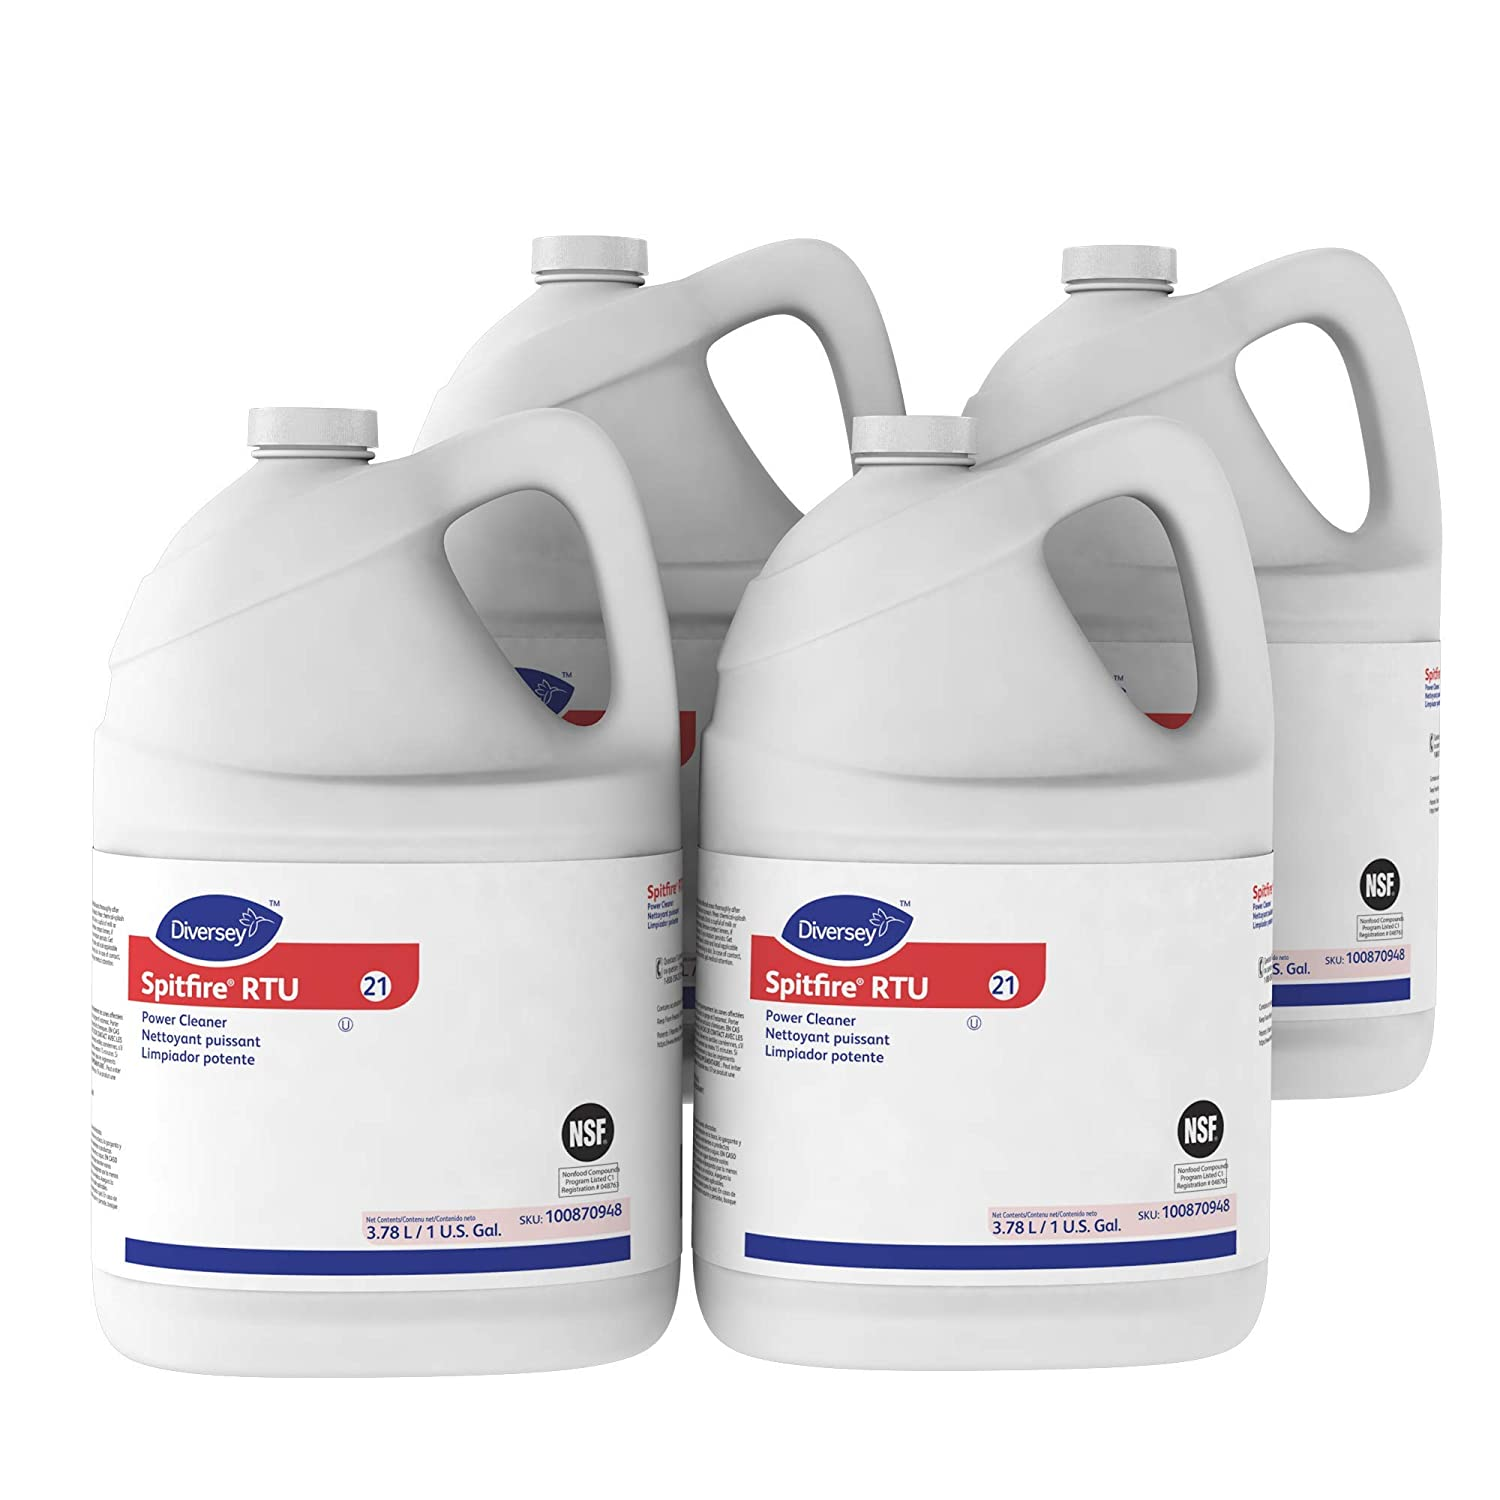 Diversey Spitfire Professional All Purpose Power Cleaner and Degreaser, 1 Gallon (2 Pack) Sealed Air CBD540045